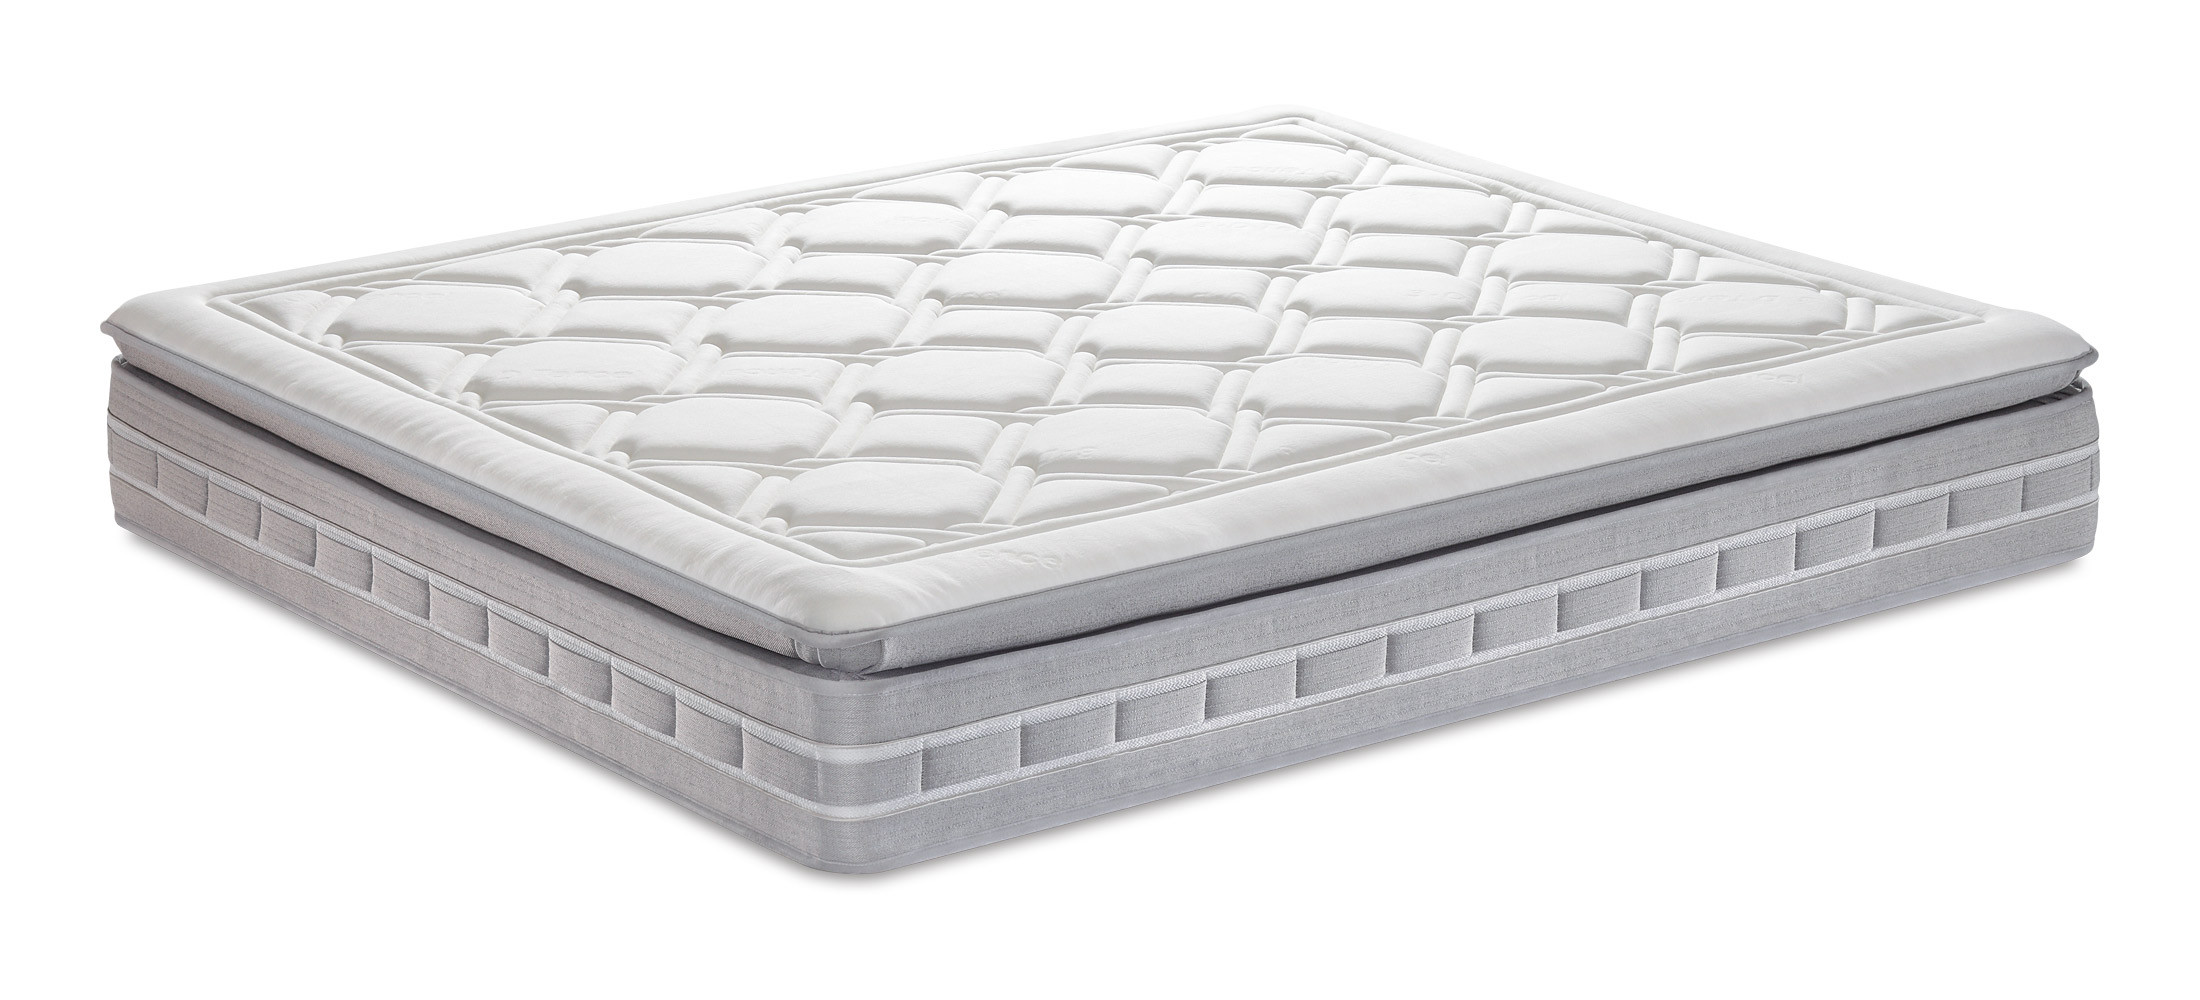 Top Materassi In Memory.Mattress With Pocketed Springs Animo Pillow Top Shop Now